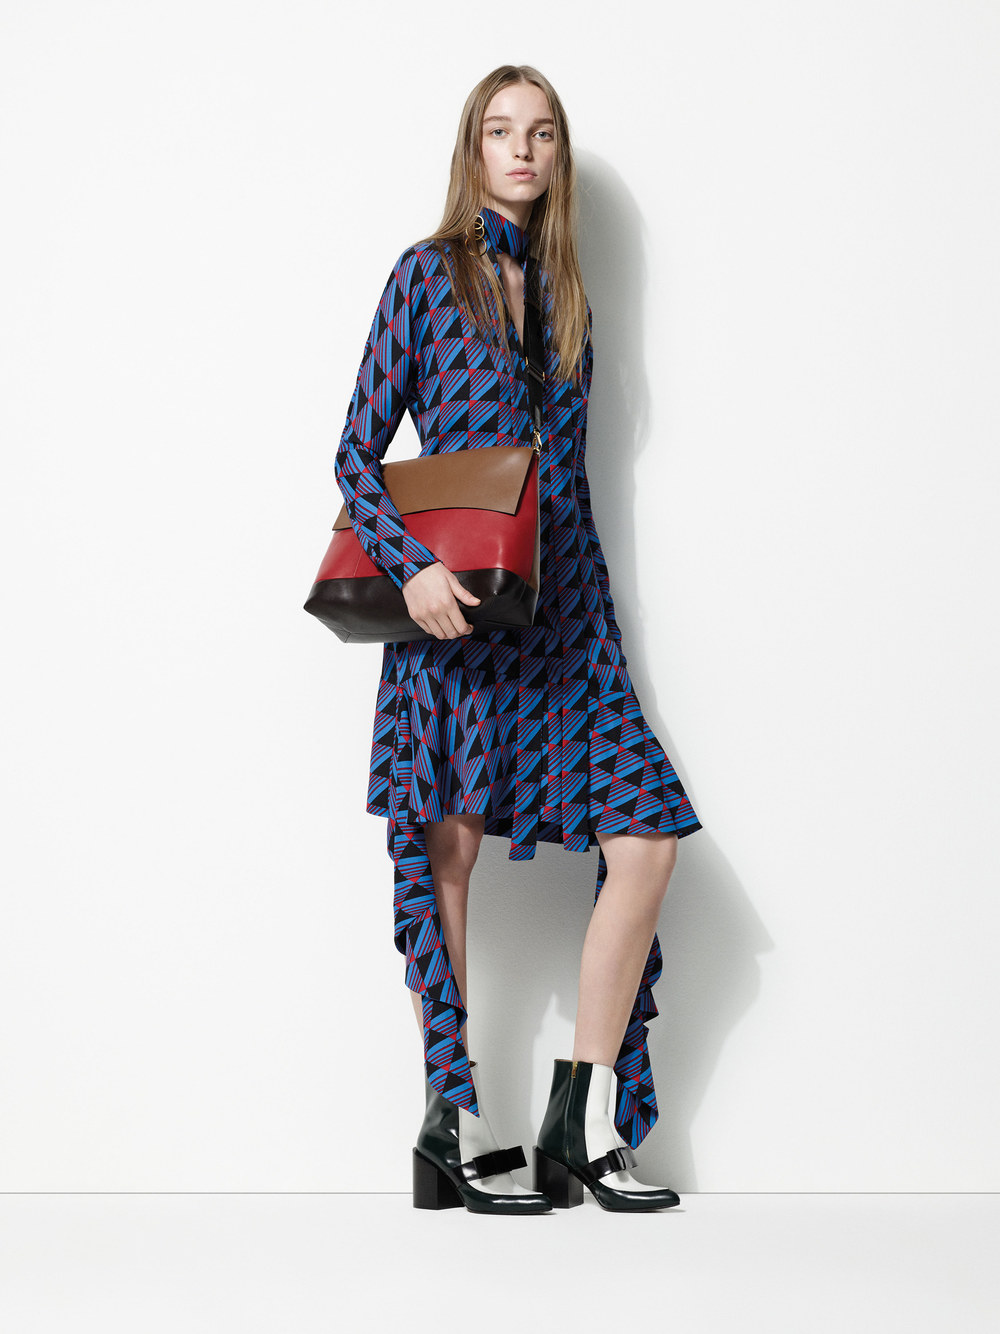 marni-pre-fall-2016-lookbook-21.jpg